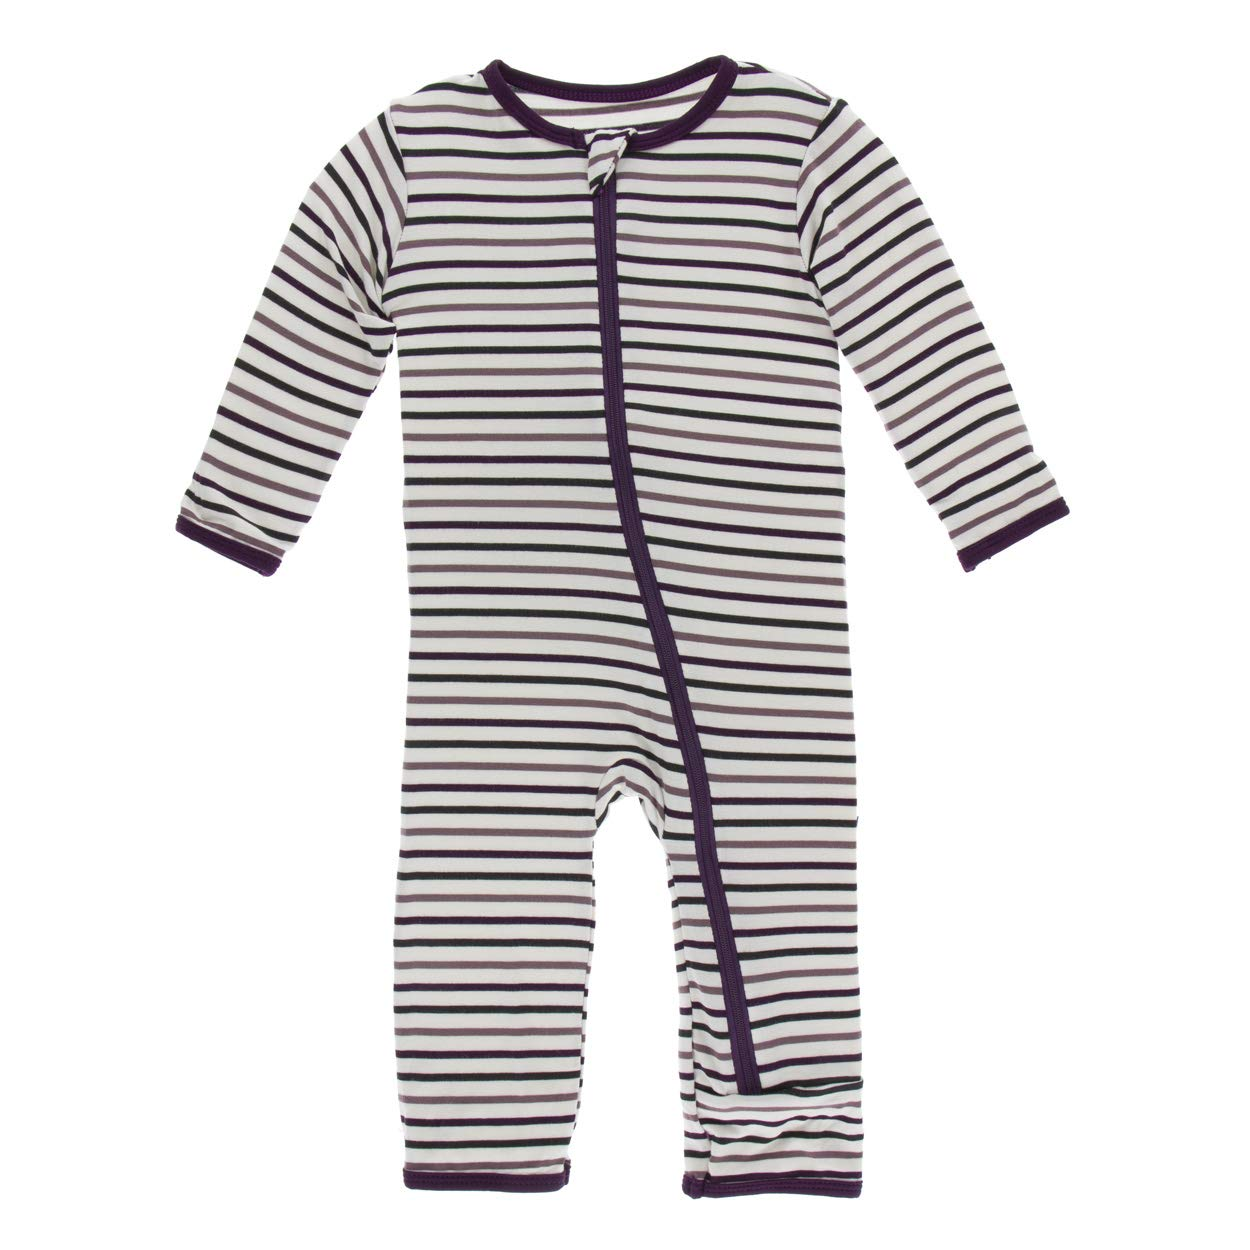 Kickee Pants Little Girls and Boys Print Coverall with Zipper - Tuscan Vineyard Stripe, 5 Years